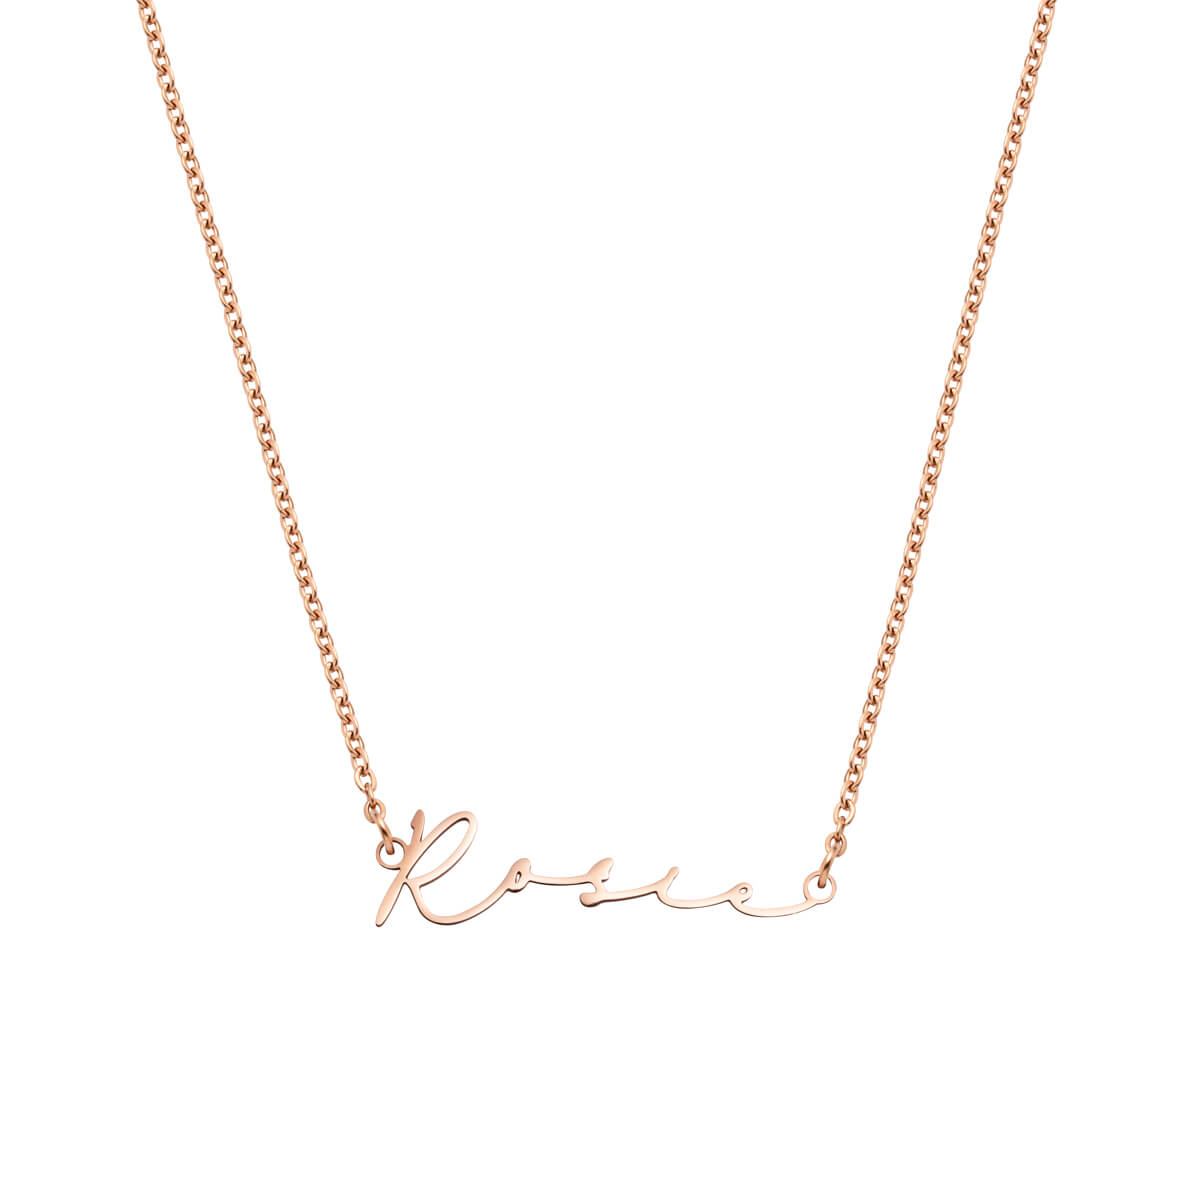 Signature Name Necklace (Rose Gold).